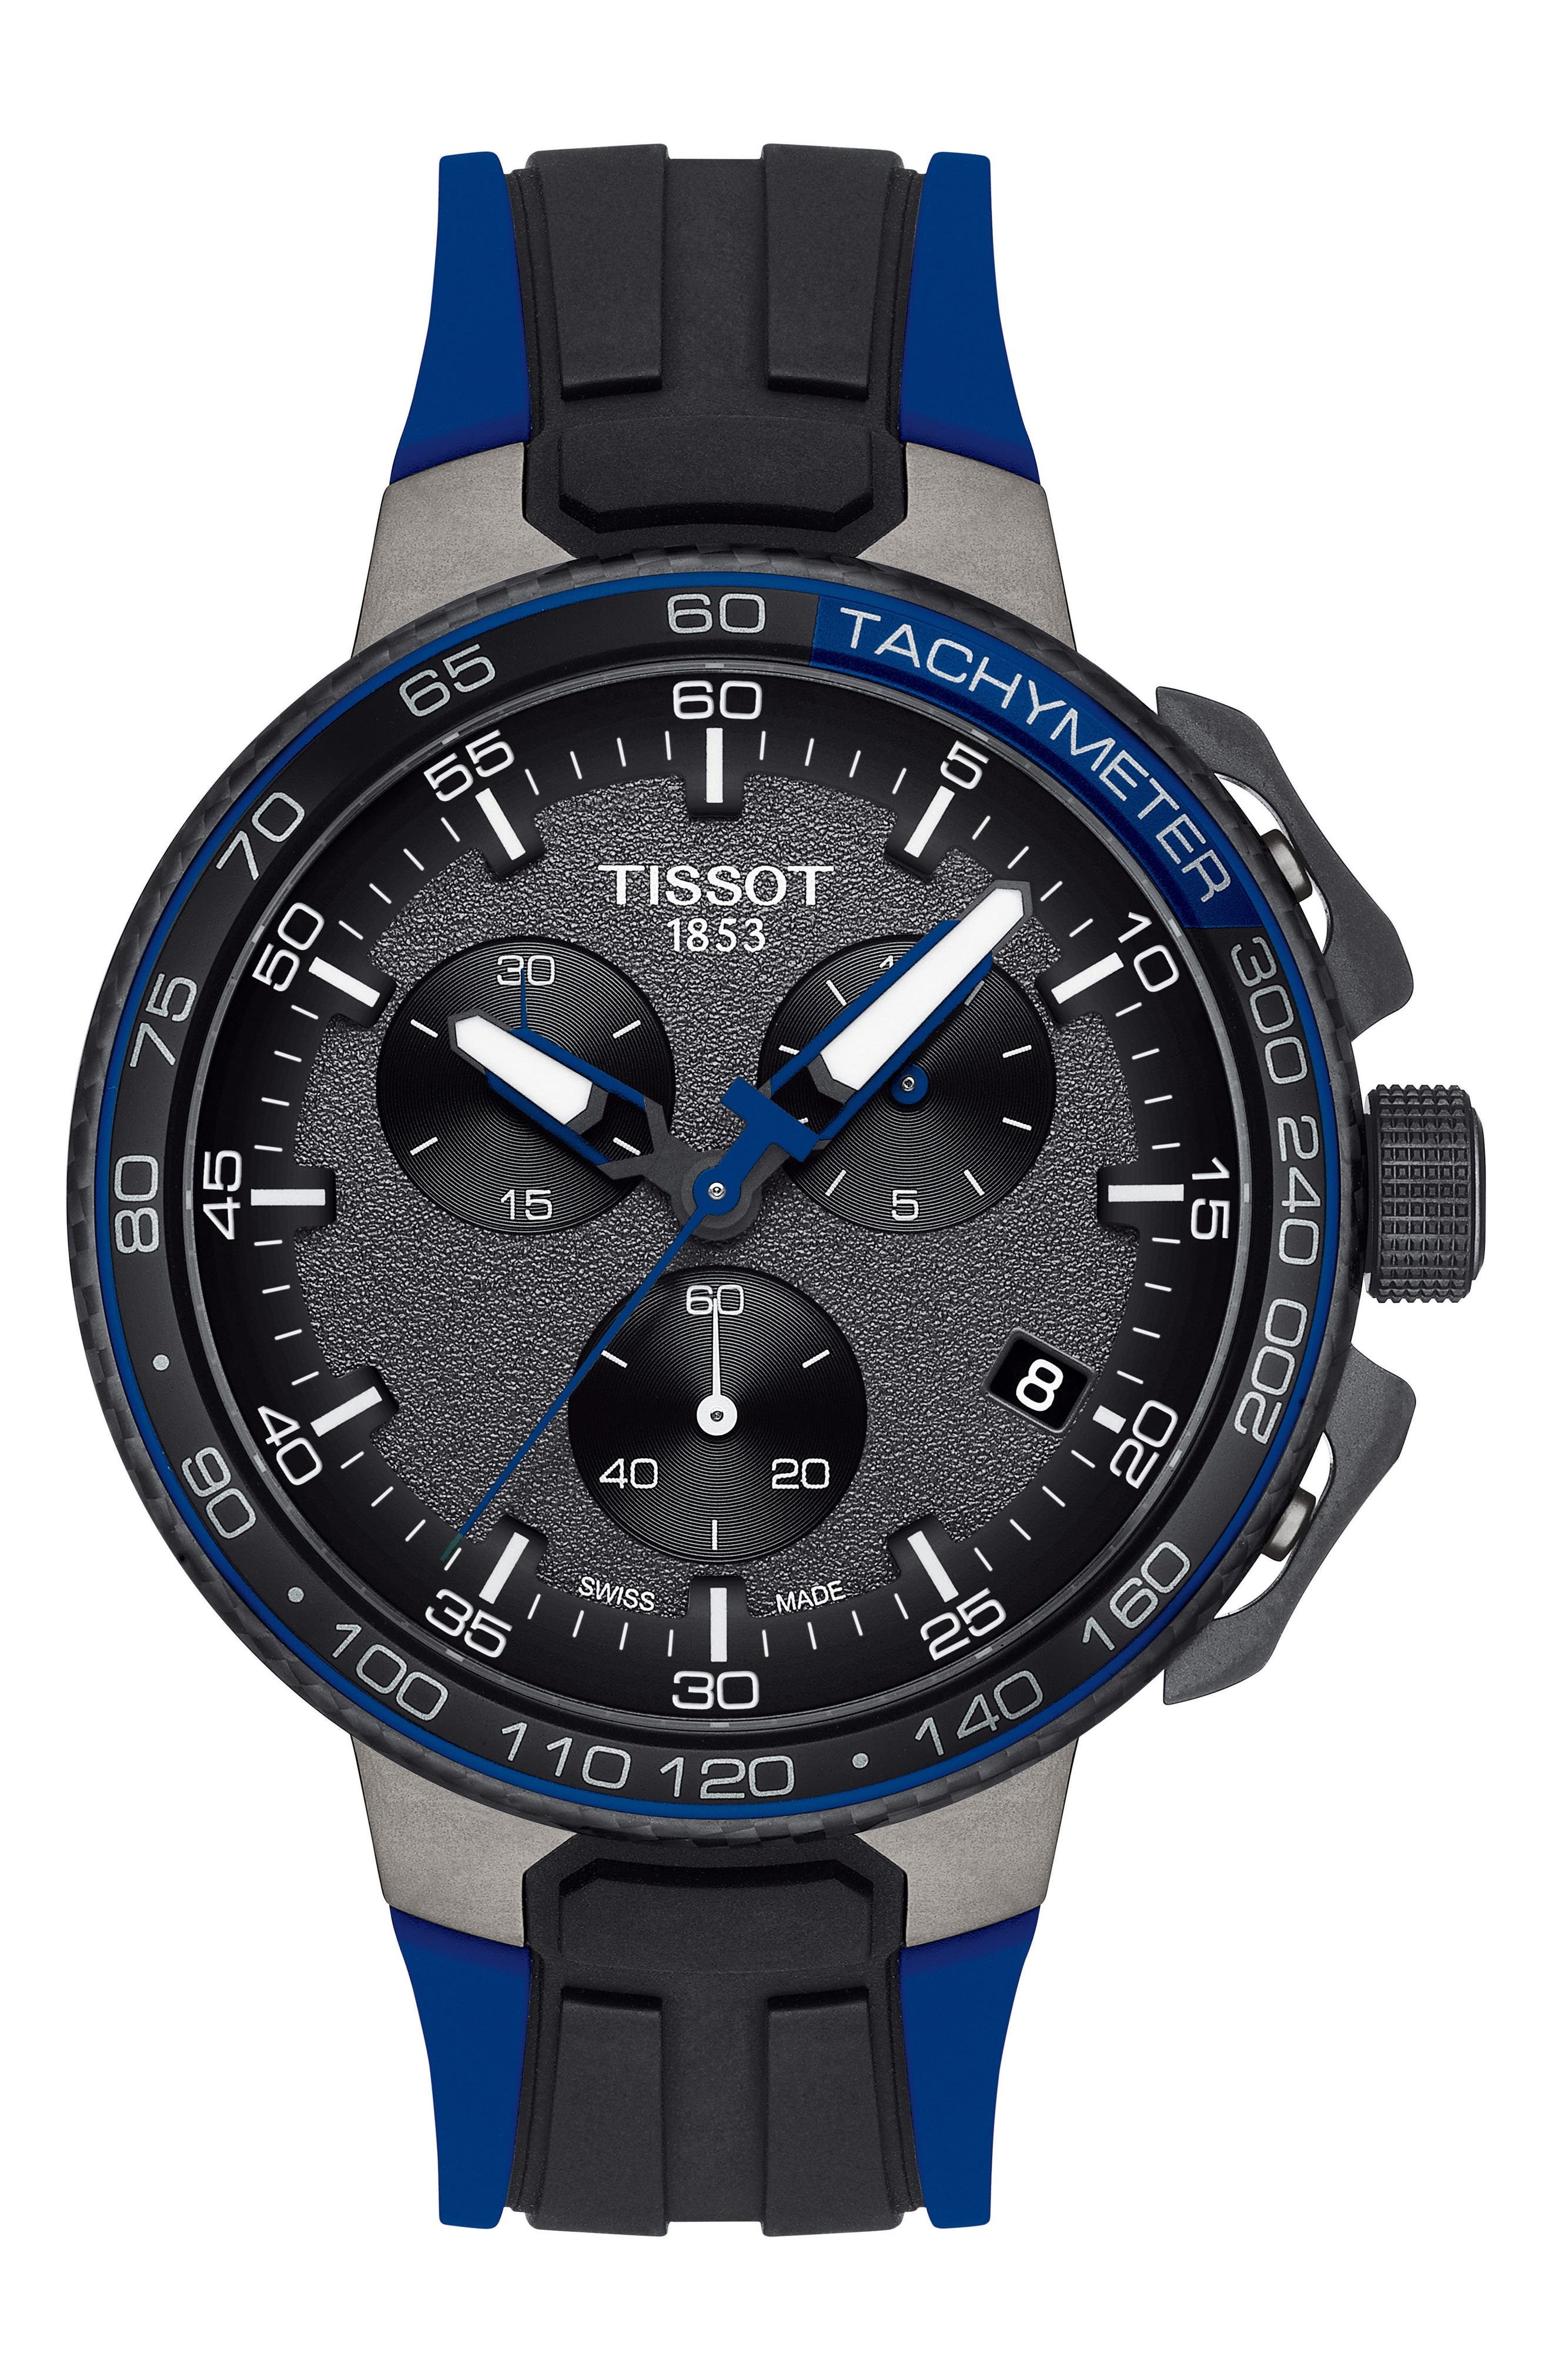 Image of Tissot Men's T-Sport T-Race Cycling Chronograph Silicone Strap Watch, 44.5mm